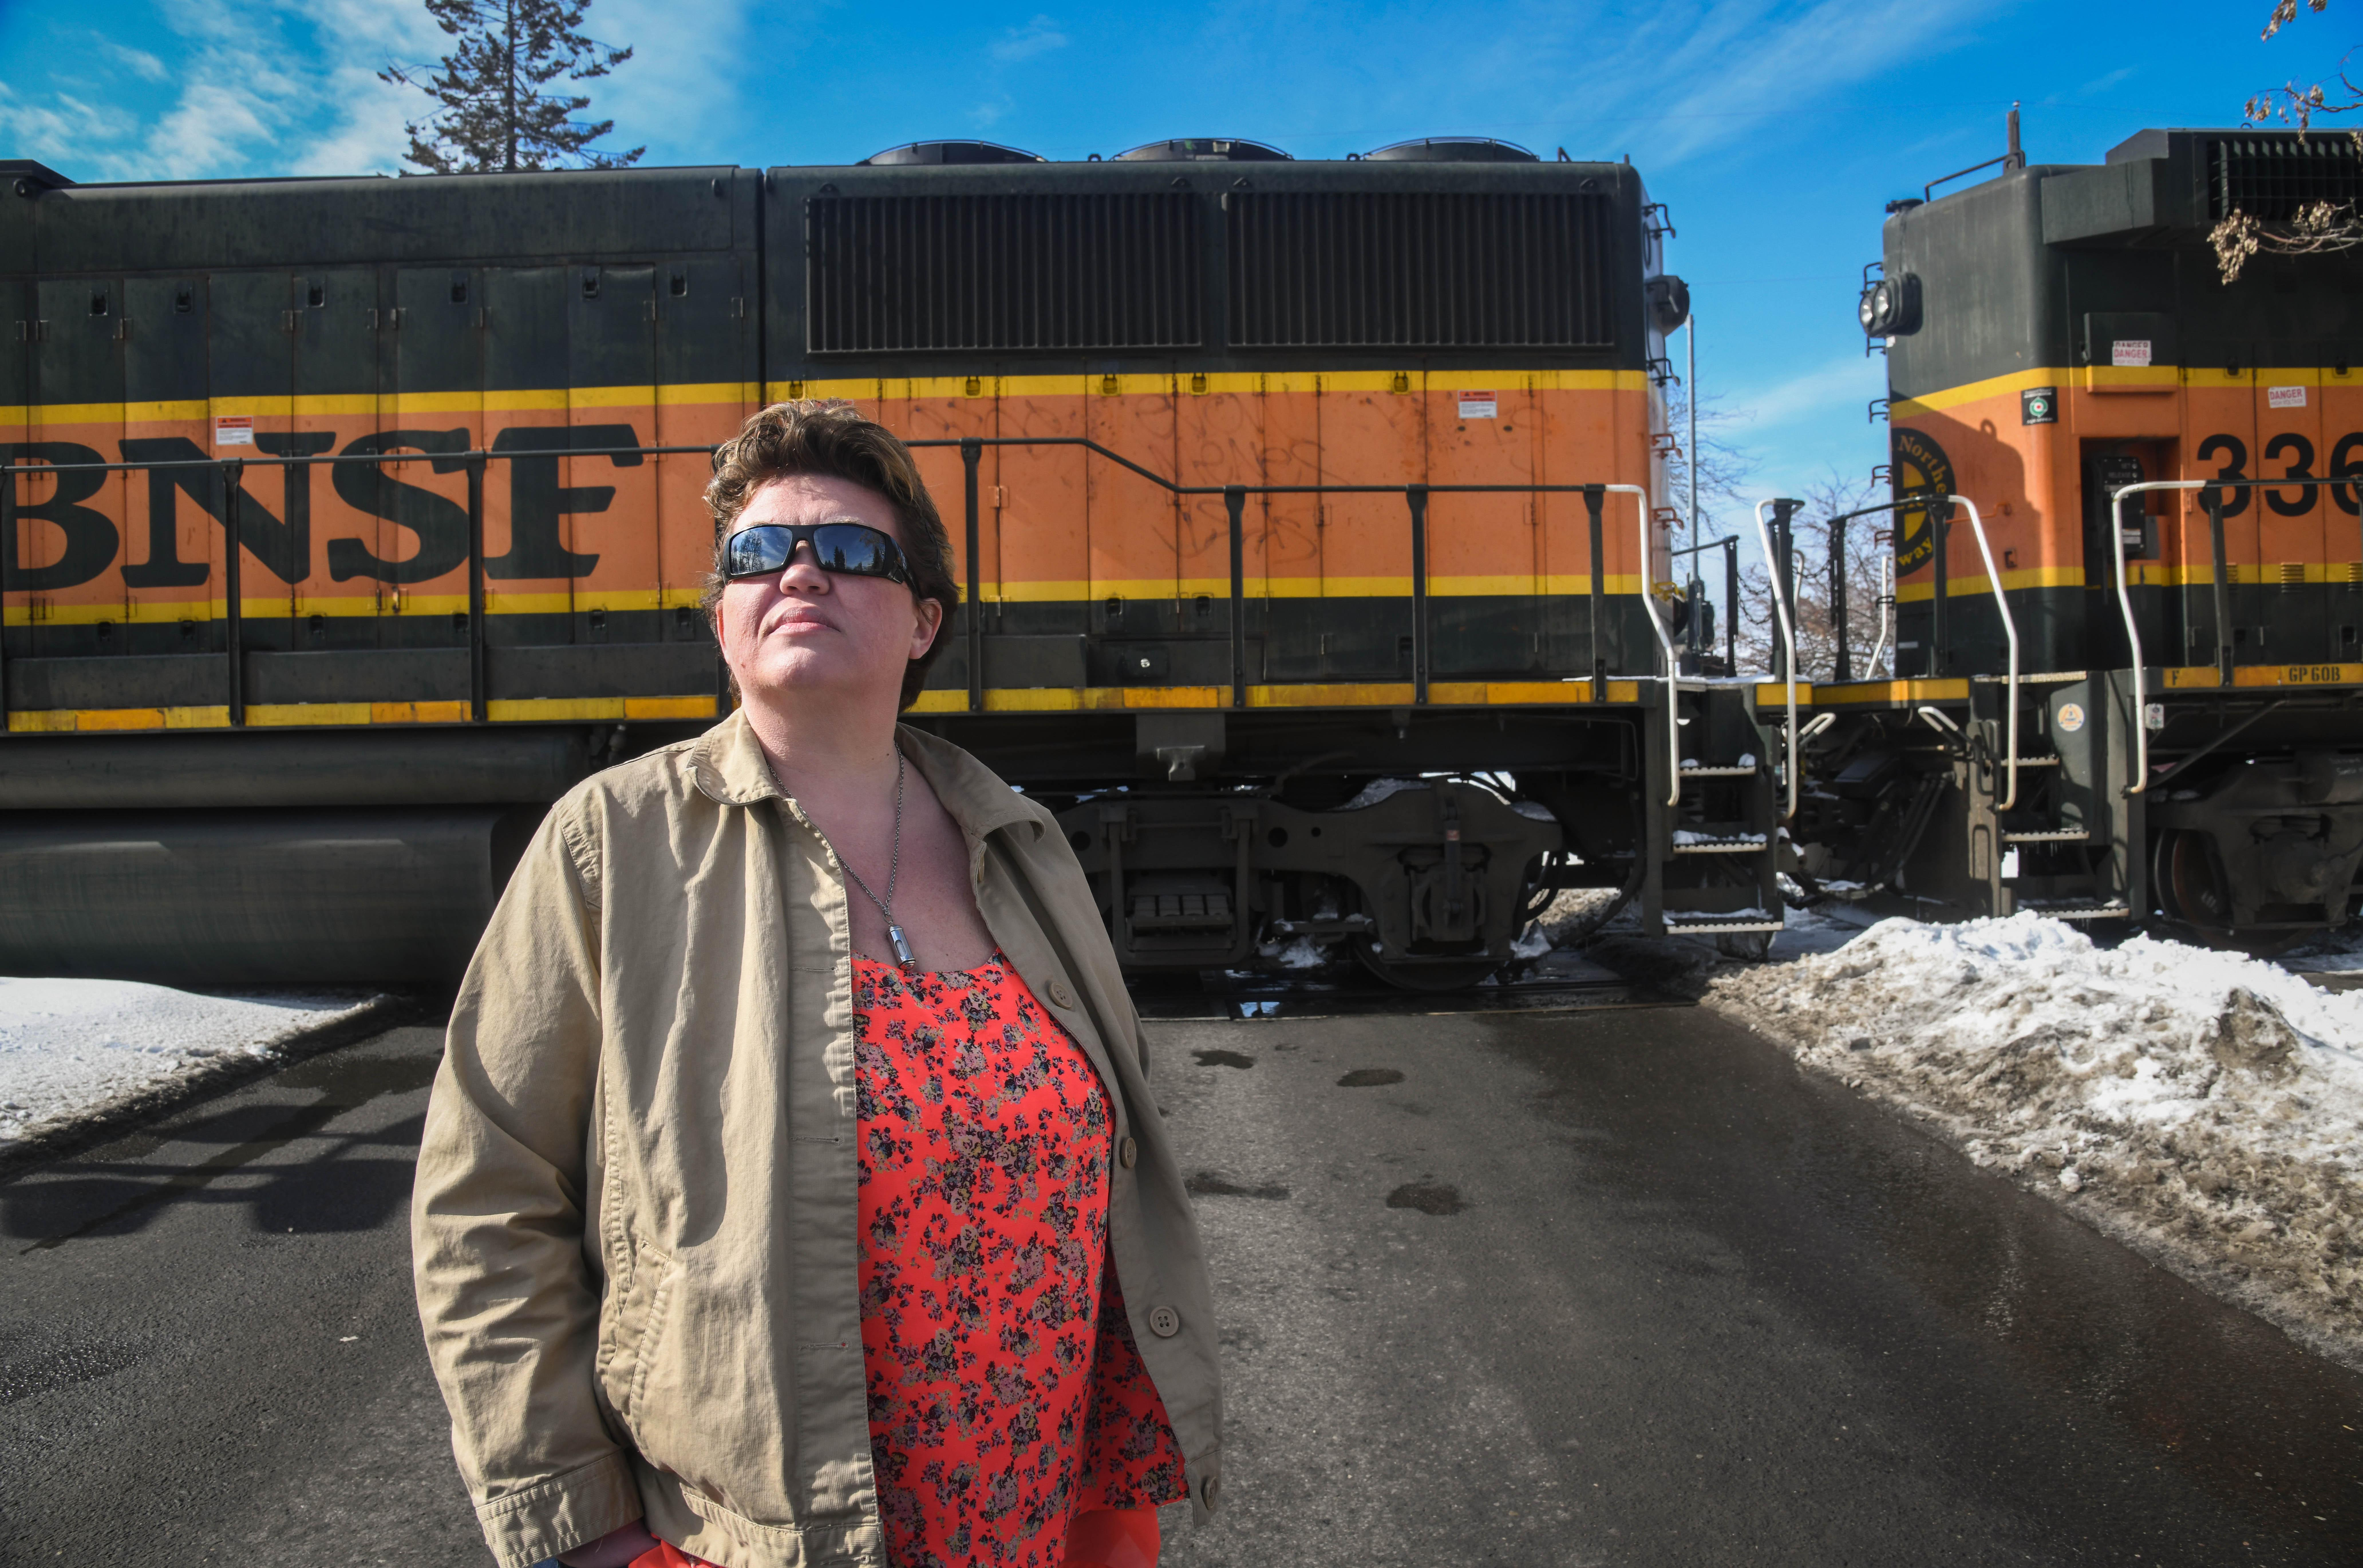 Man survives being hit by train on Mission Avenue | The